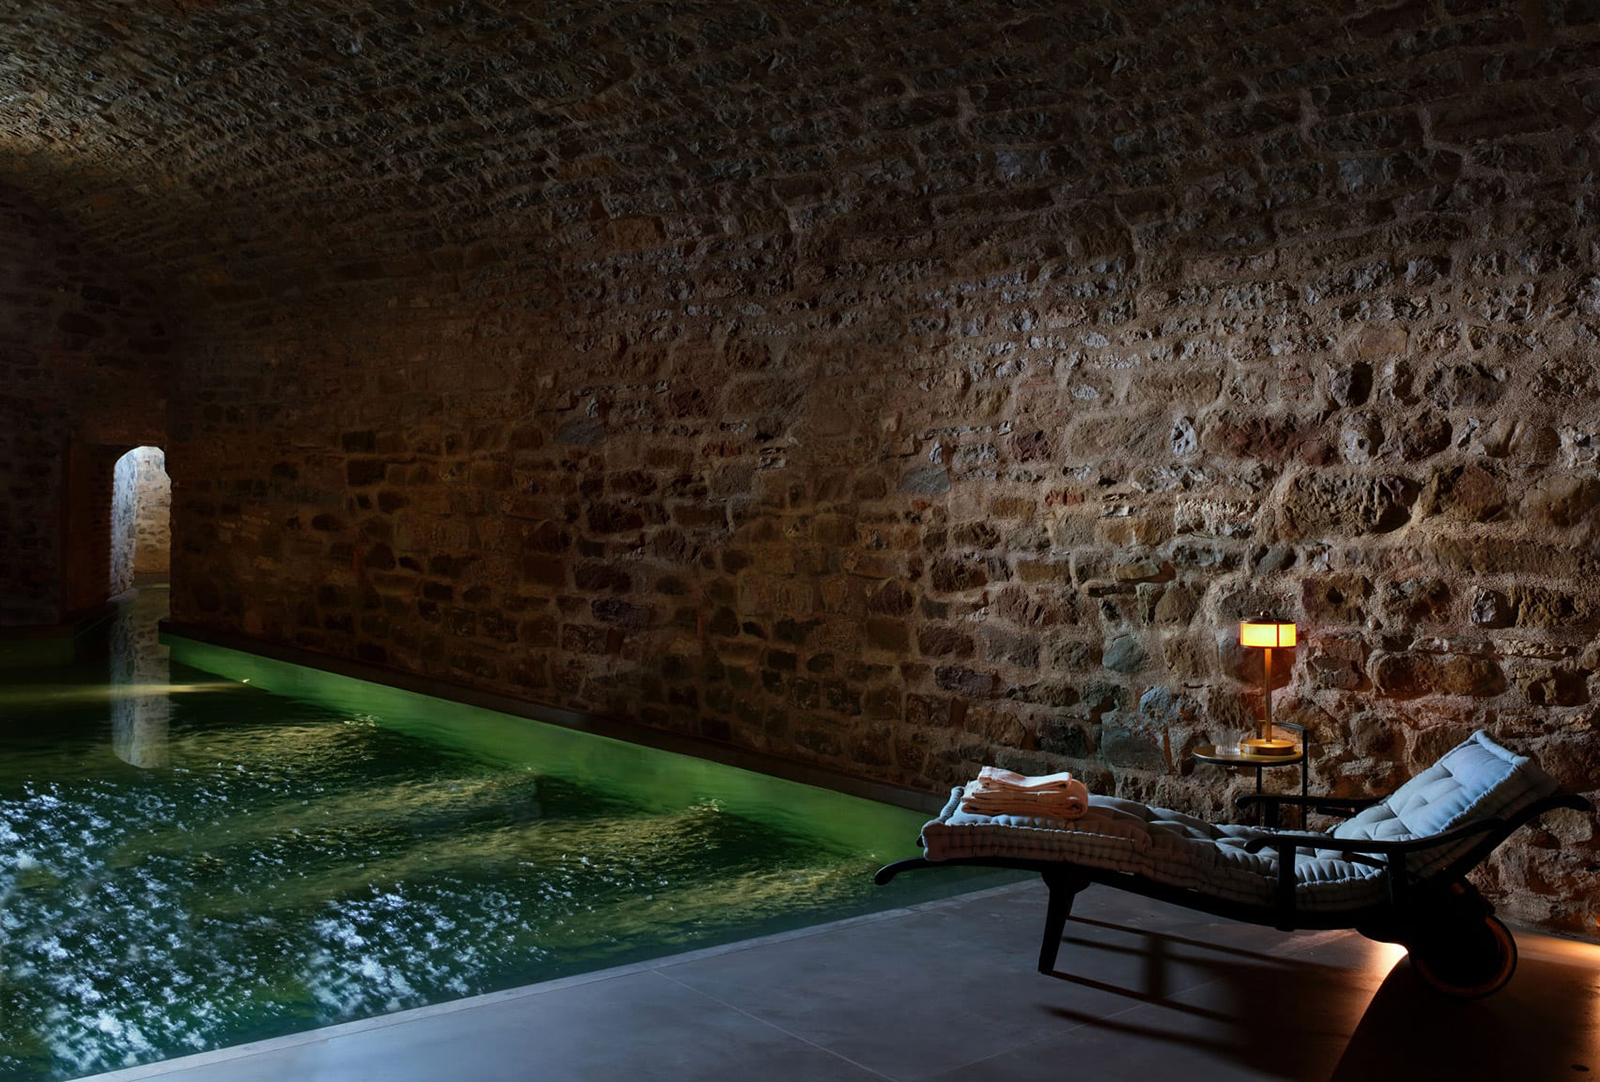 As well as an outdoor pool, set into the hotel lawn, the castle's ancient wine cellars are now a Roman bath-inspired spa